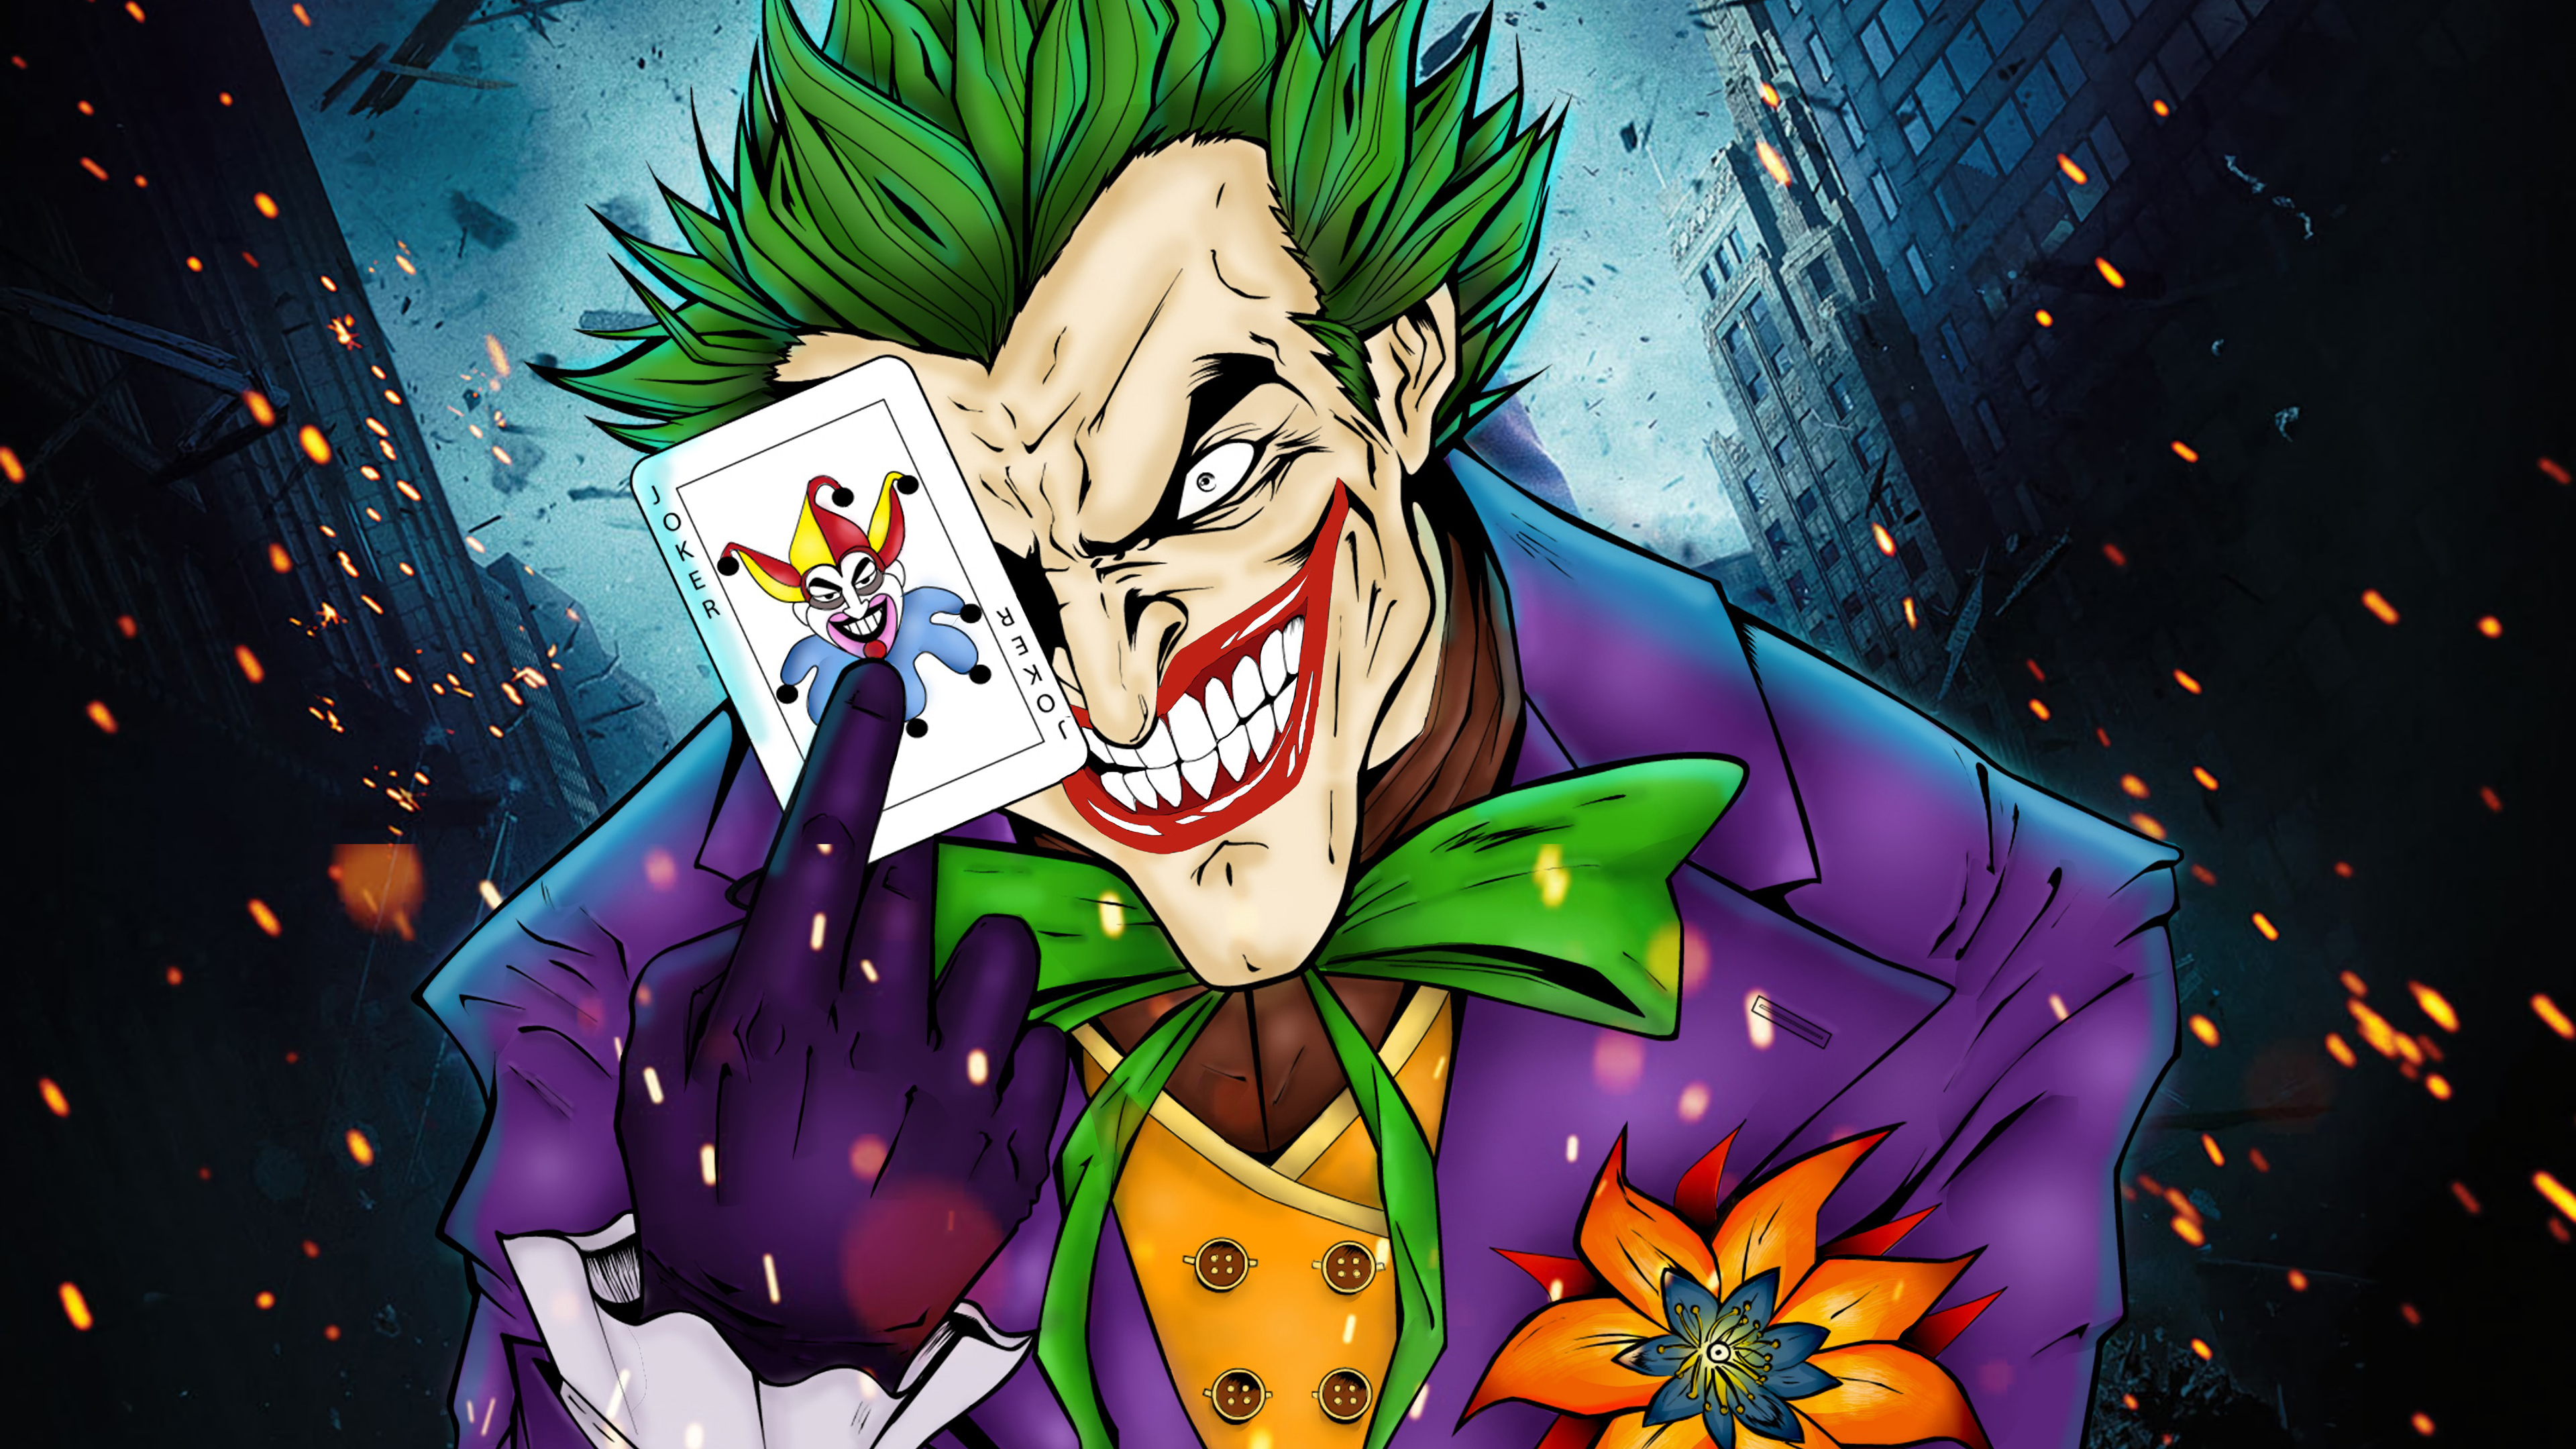 joker art 1568054746 - Joker art - superheroes wallpapers, joker wallpapers, hd-wallpapers, dc comics wallpapers, artstation wallpapers, 4k-wallpapers